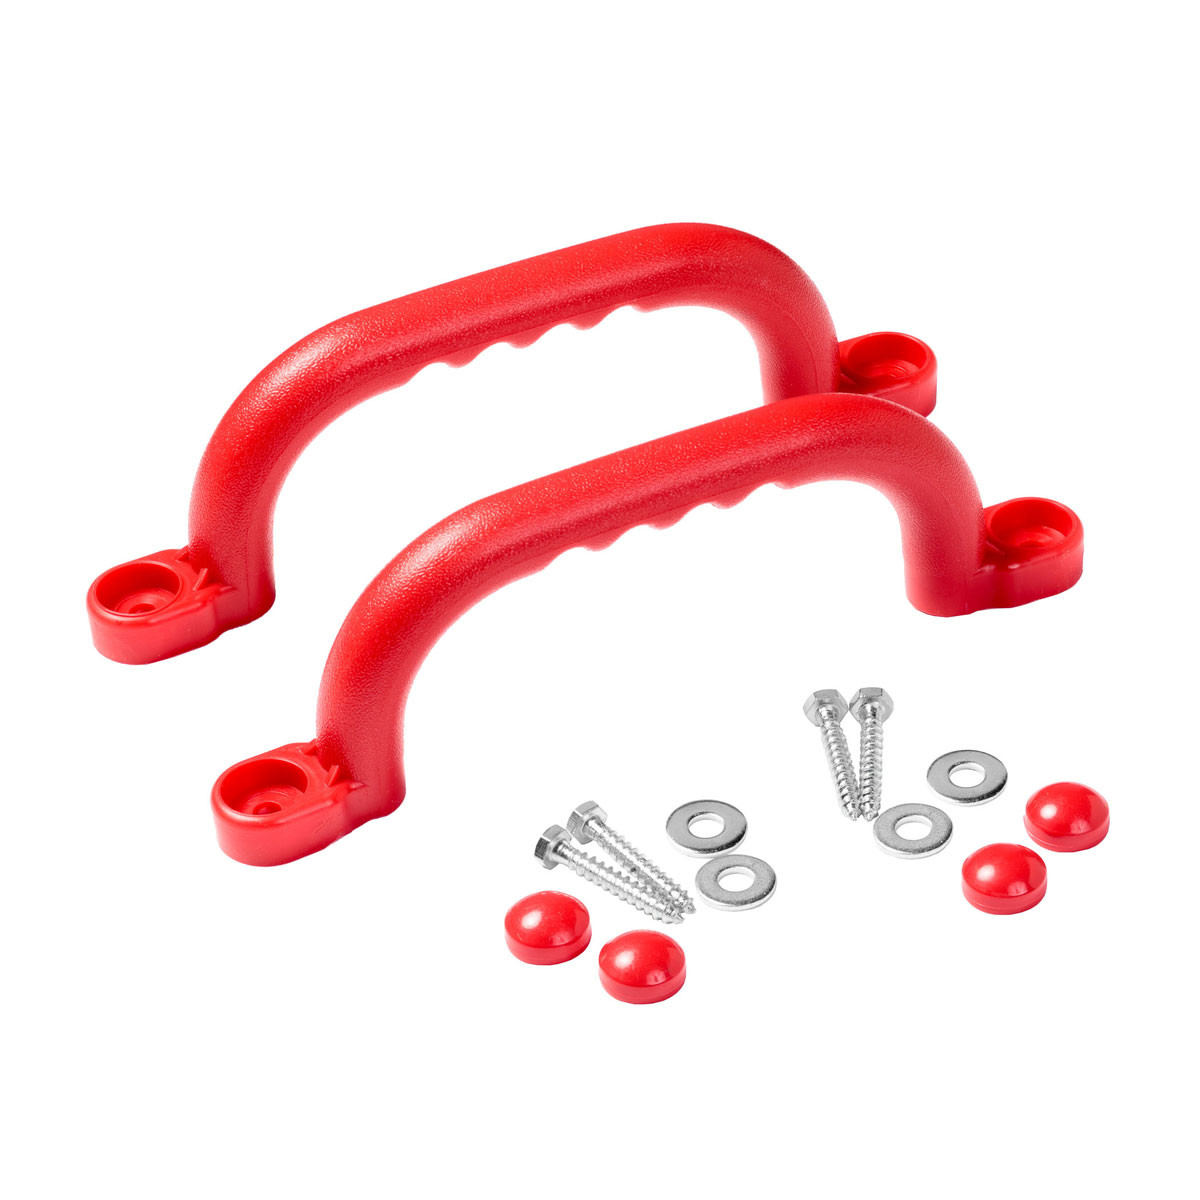 Hand Grip with Finger Ridges - HGR - Red